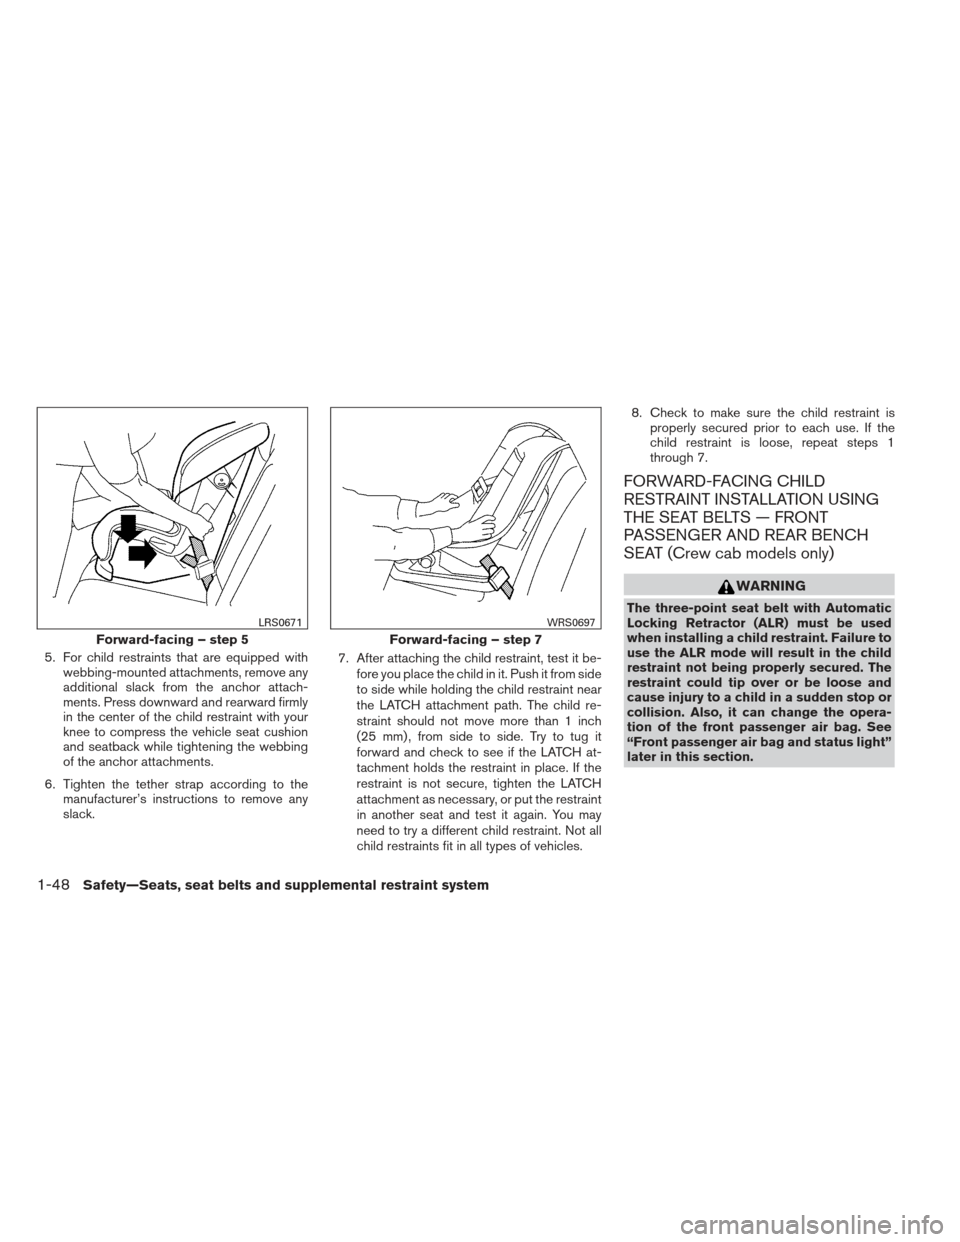 NISSAN FRONTIER 2013 D40 / 2.G Repair Manual 5. For child restraints that are equipped withwebbing-mounted attachments, remove any additional slack from the anchor attach- ments. Press downward and rearward firmly in the center of the child rest